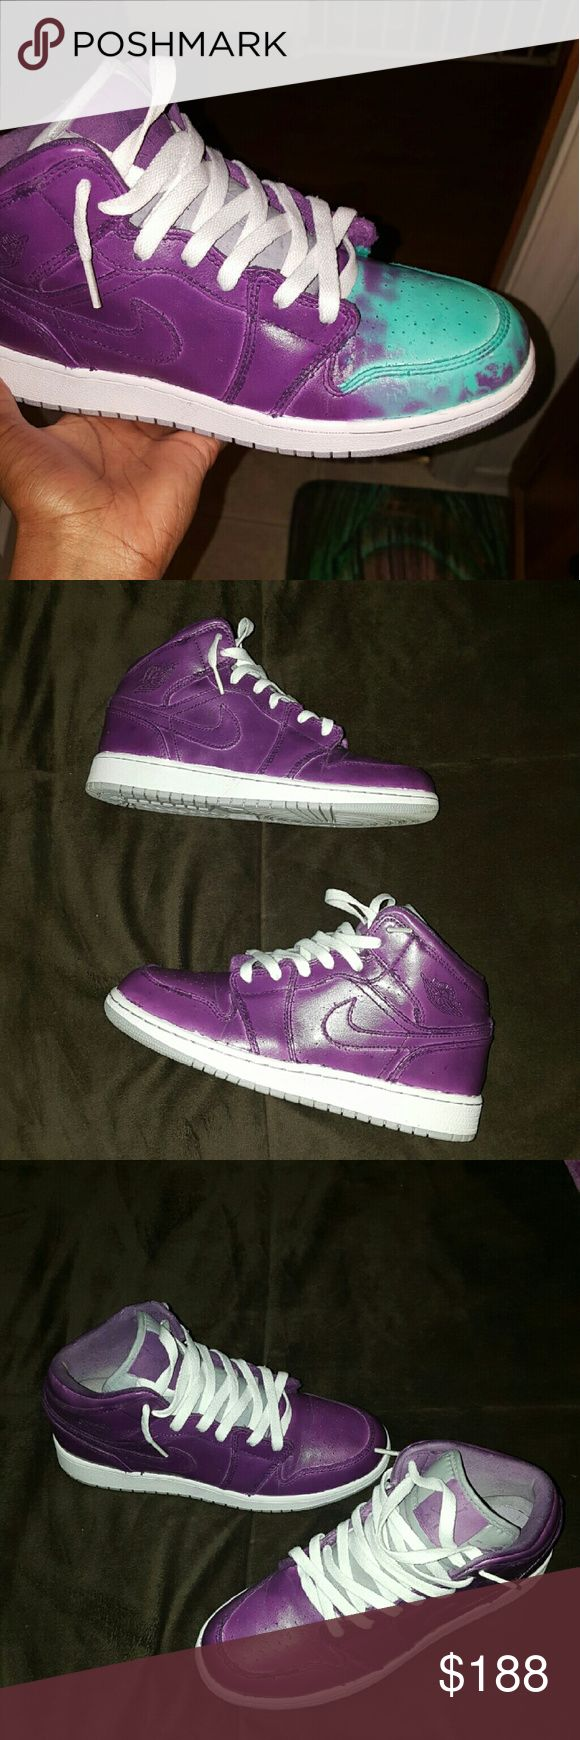 Custom Thermal Jordan Retro 1 When hot color changes to torquoise, when cold they turn purple Jordan Shoes Sneakers